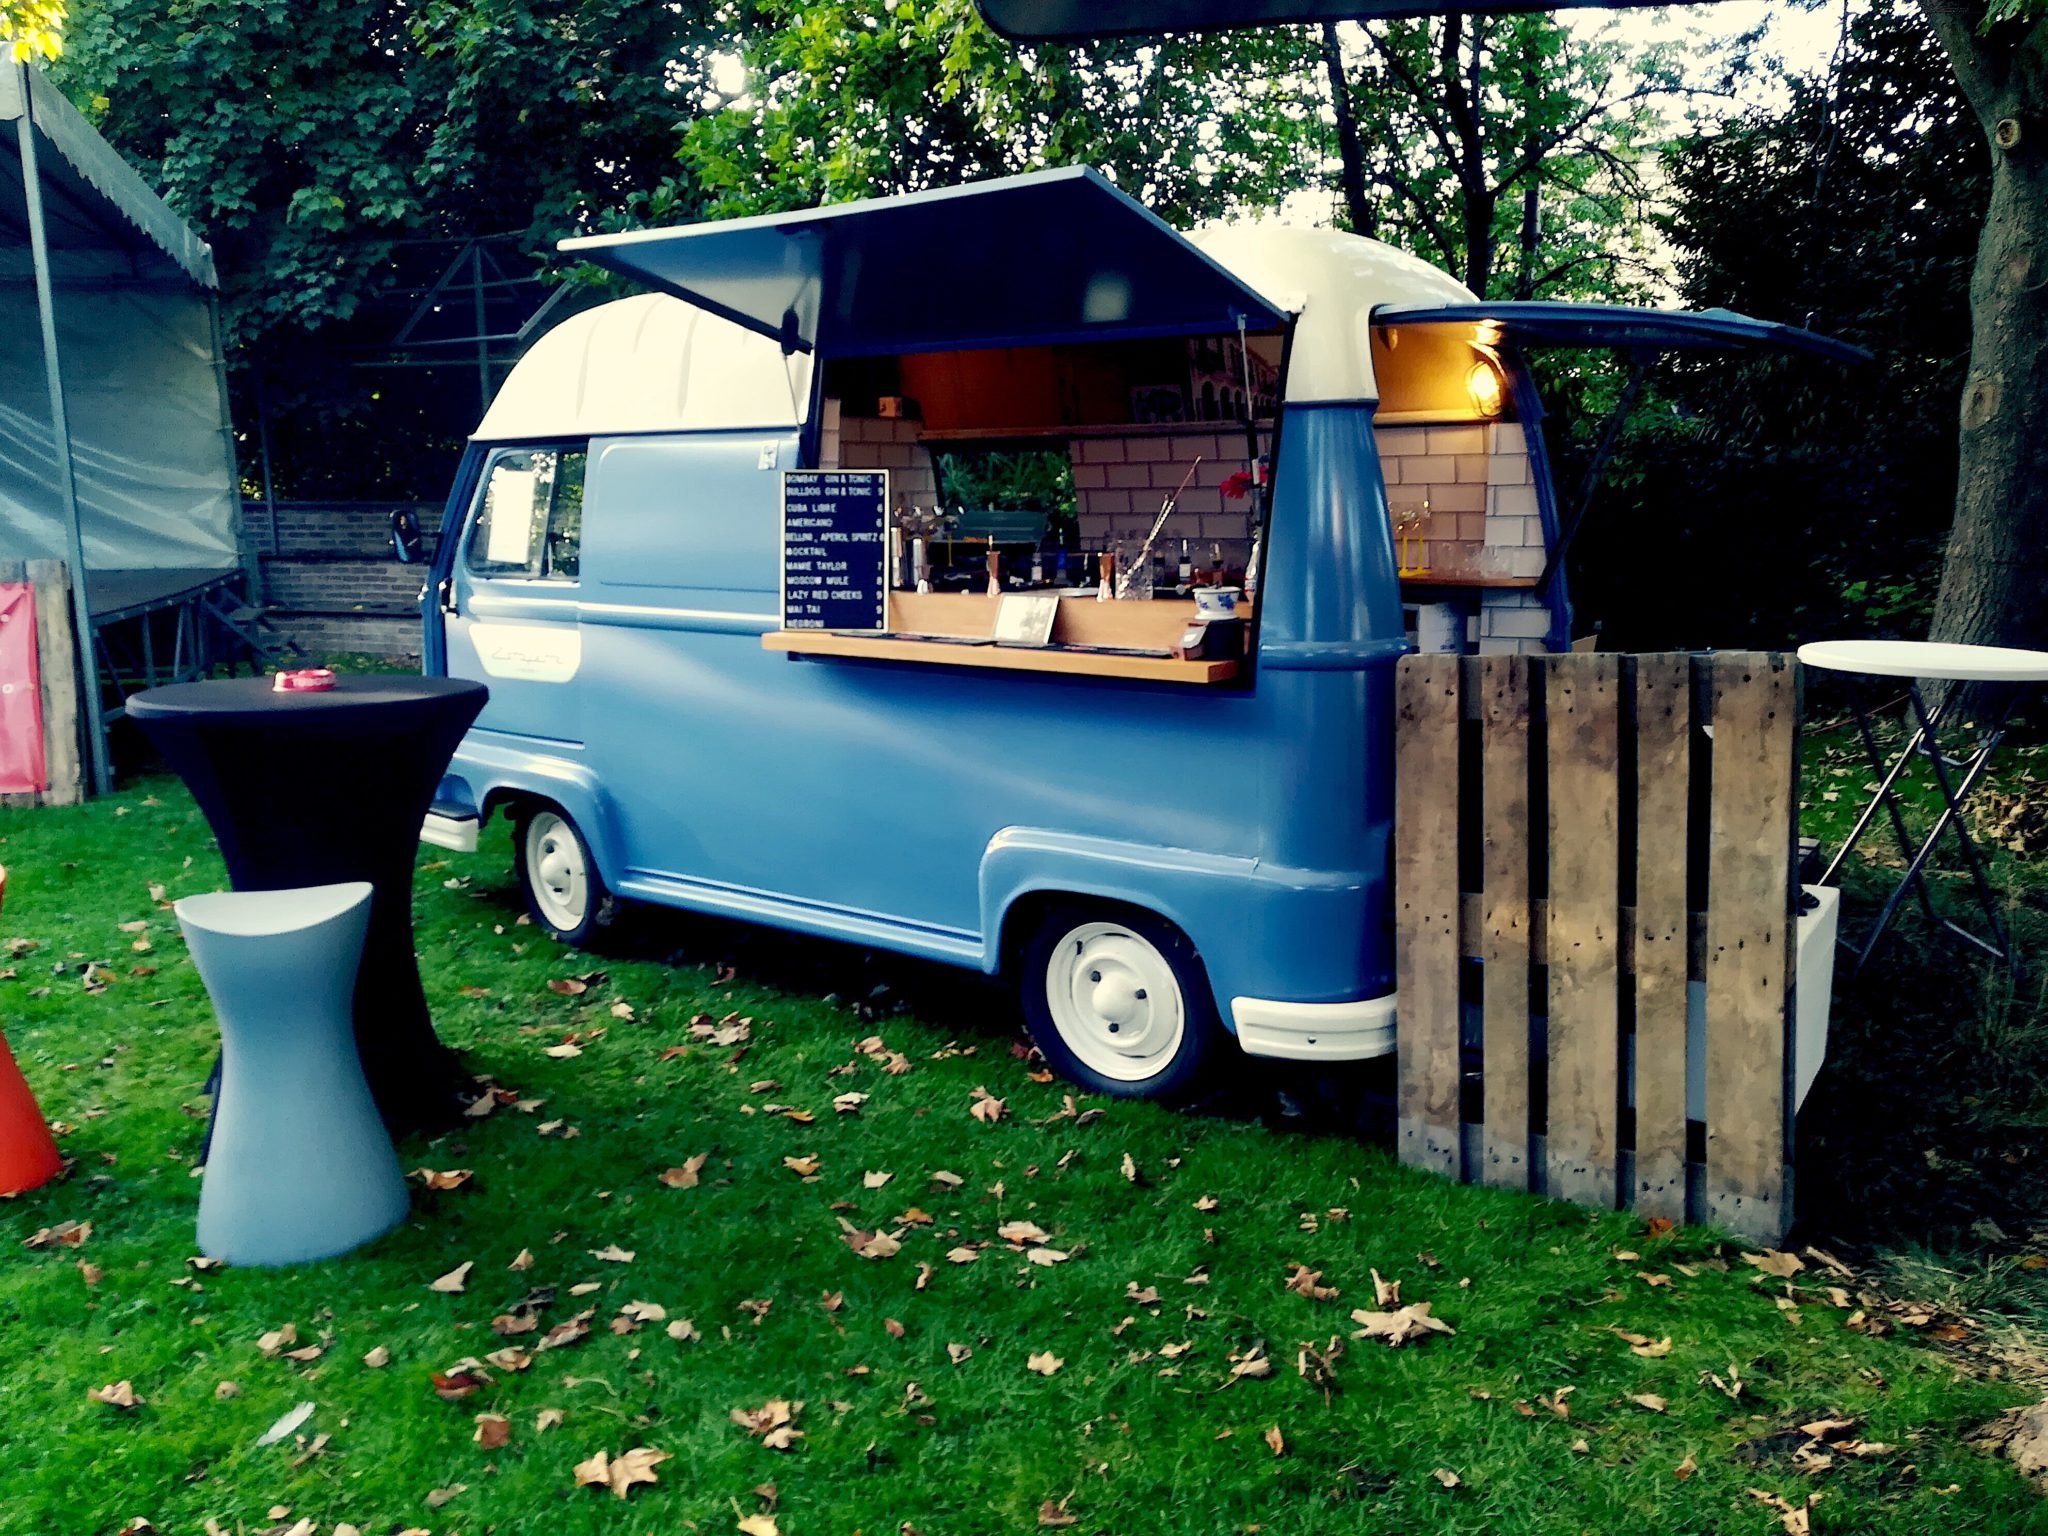 Bar Estafette Foodtruck